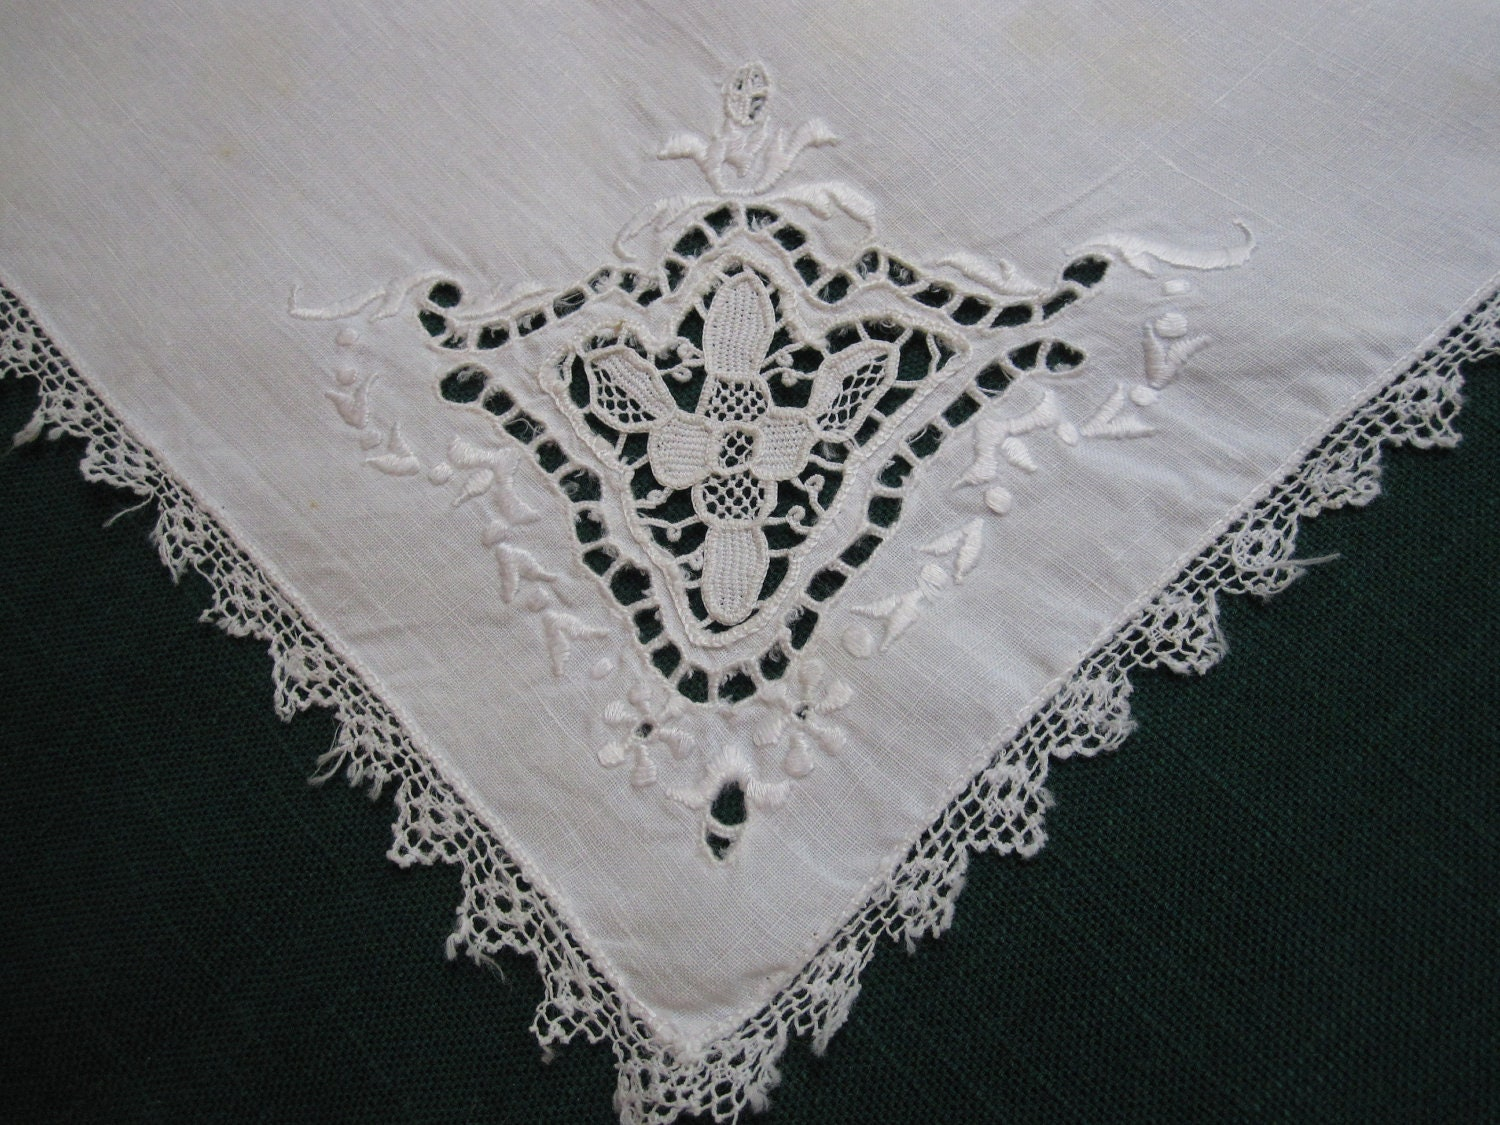 Antique Cutwork Embroidered Lace Trim Napkins